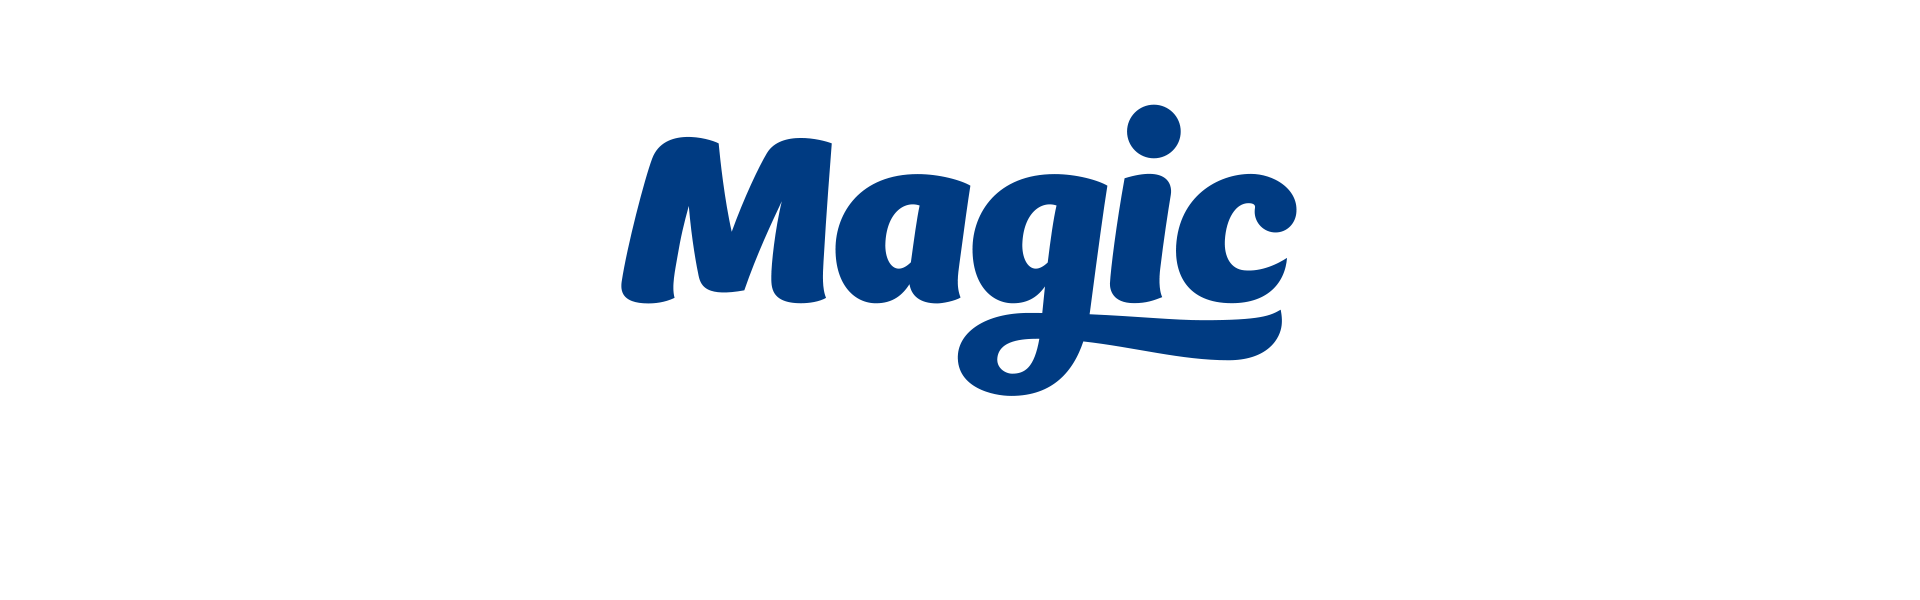 Magic Radio | More of the Songs You Love